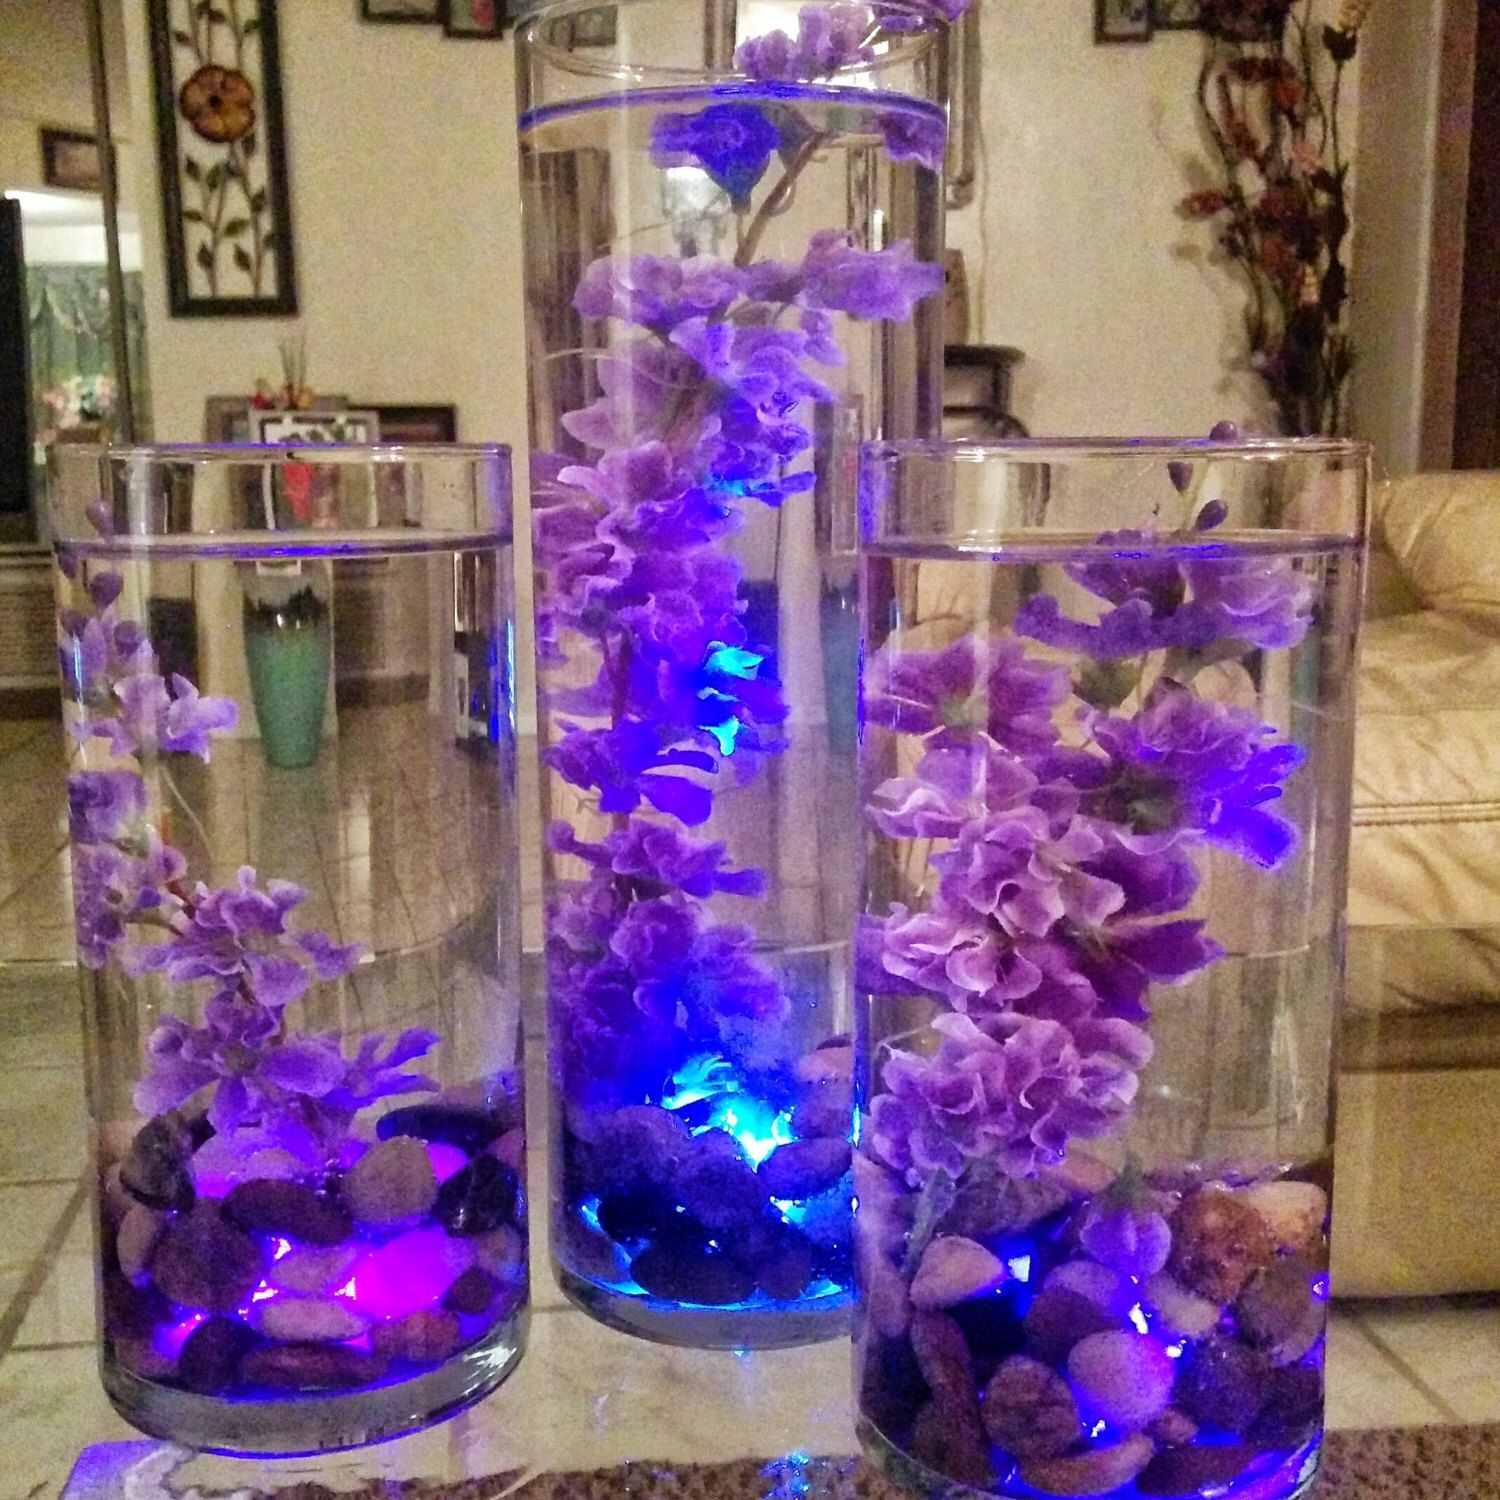 Floating flowers in water glass vase with rocks candles and led floating flowers in water glass vase with rocks candles and led lights by queenvashtie on etsy floridaeventfo Gallery